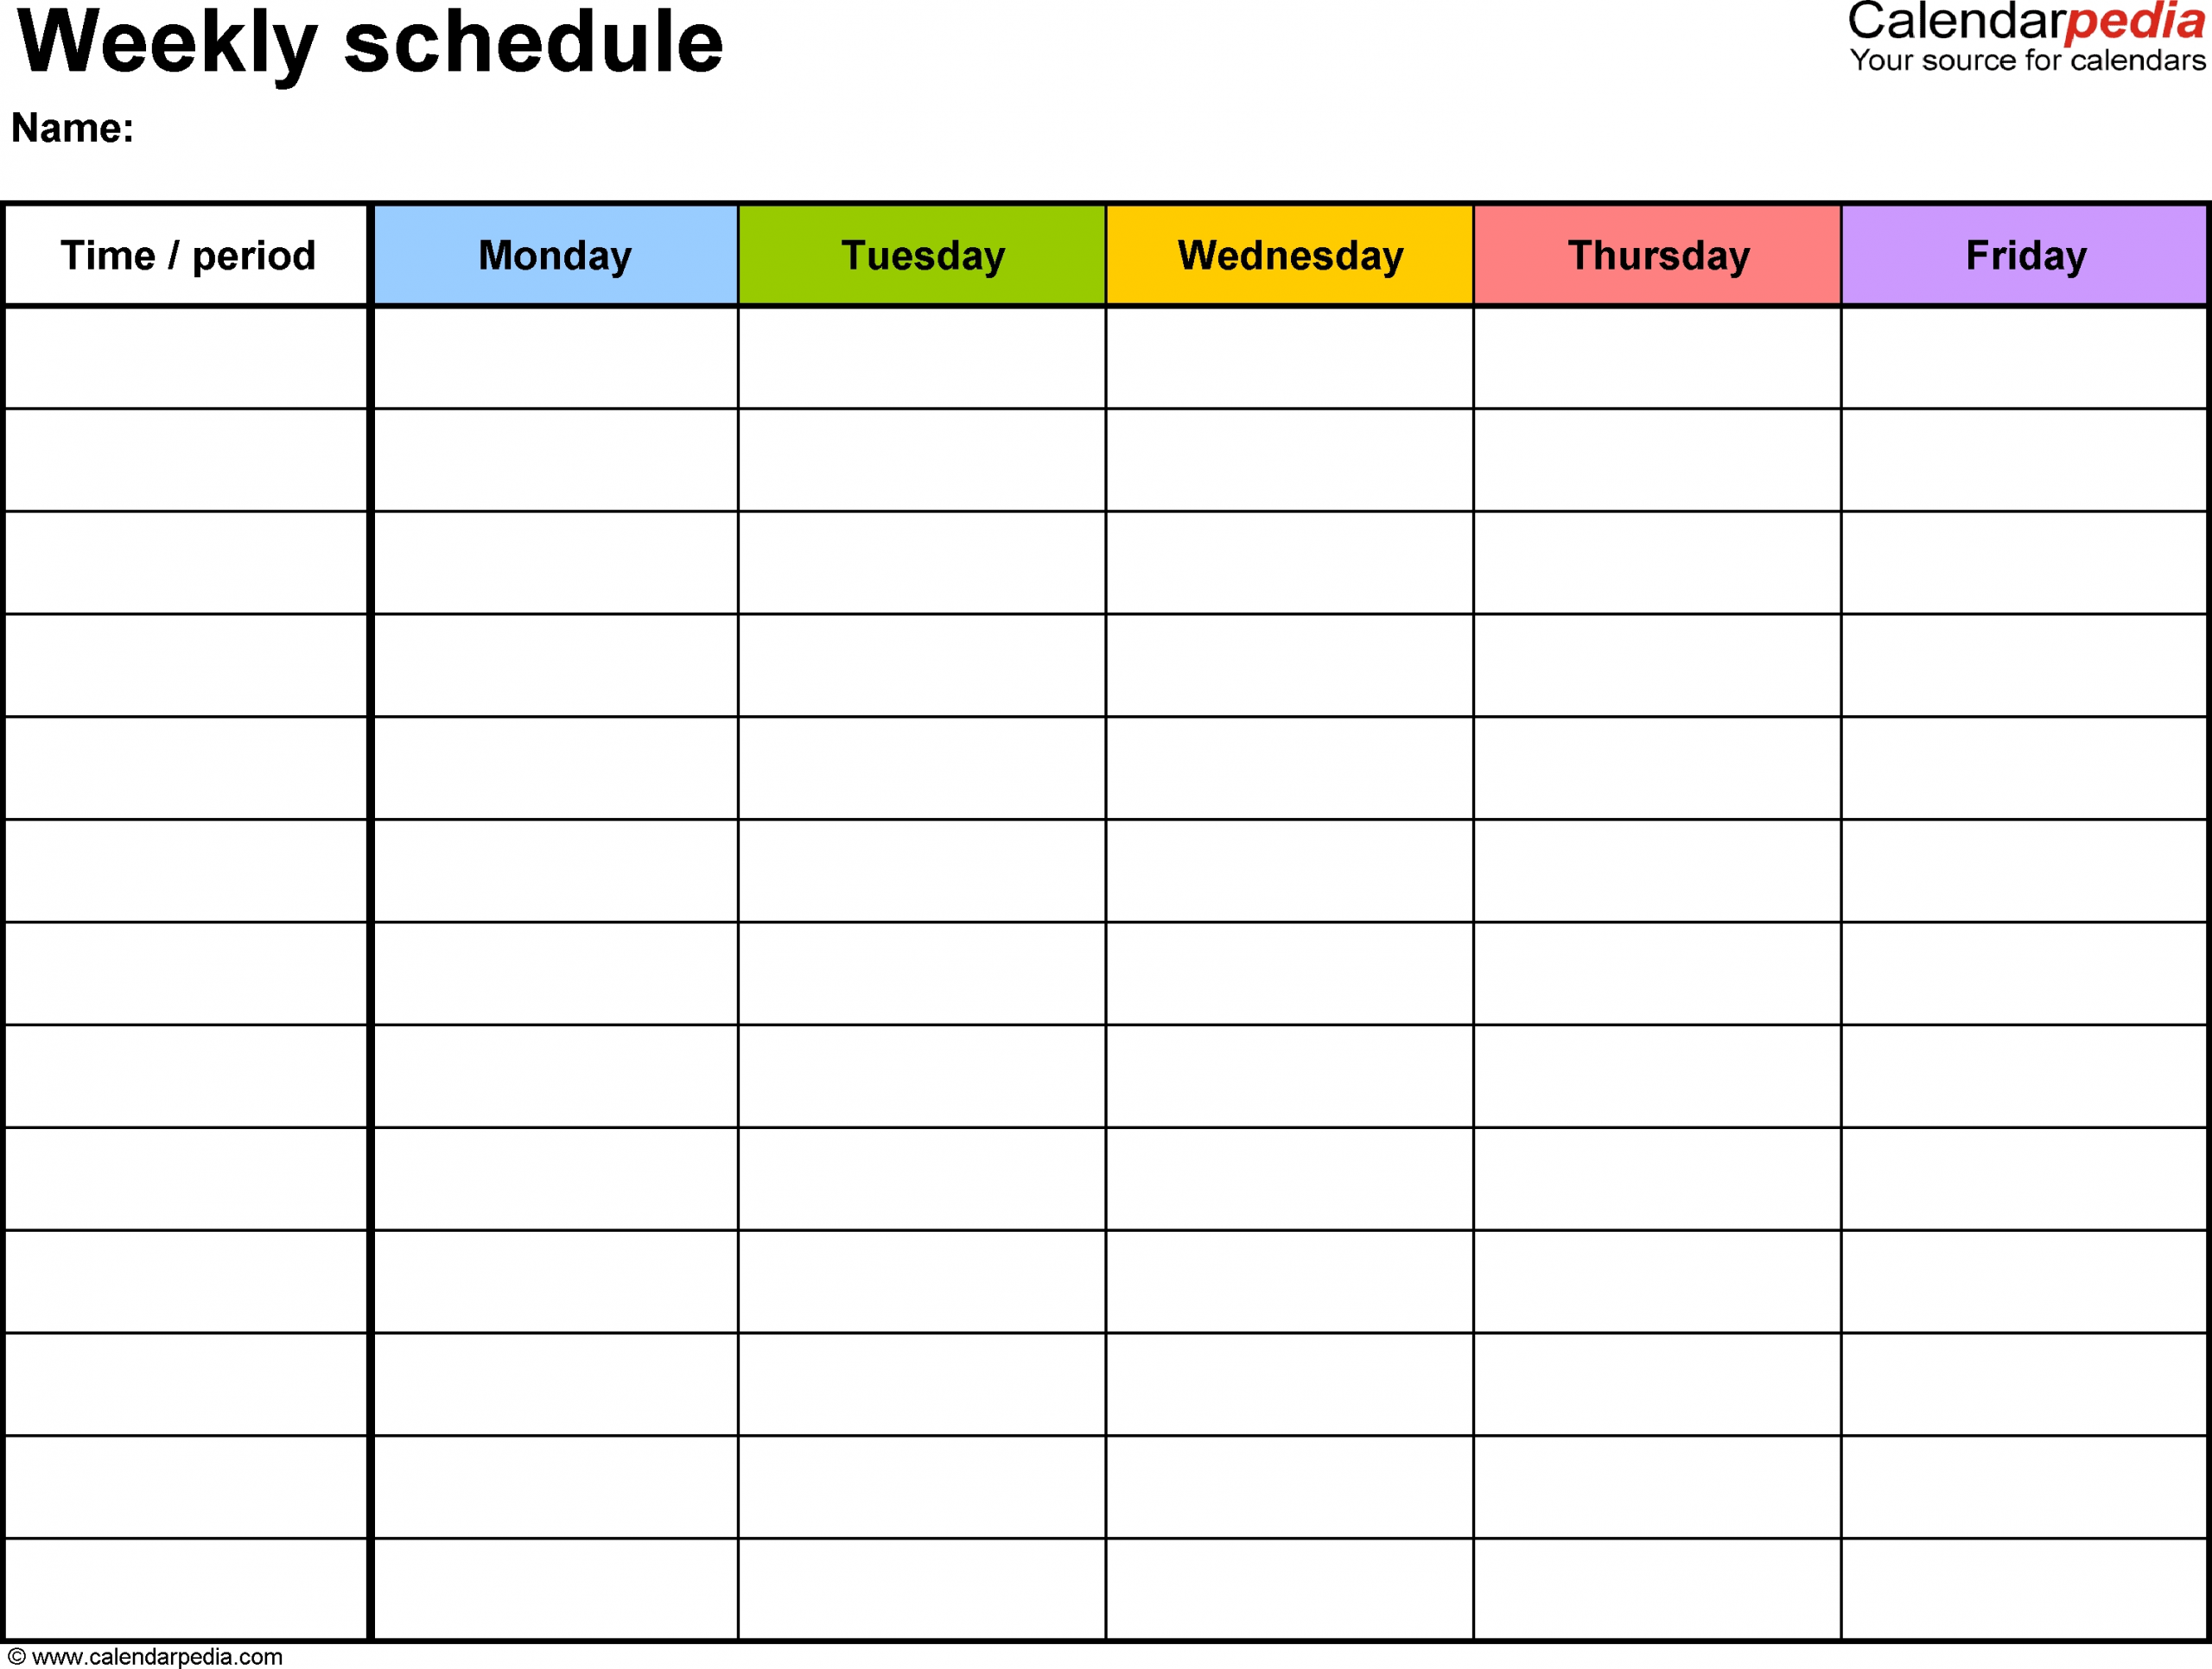 Printable Weekly Schedule With Hours Monday To Friday Monday Through Friday Calendar